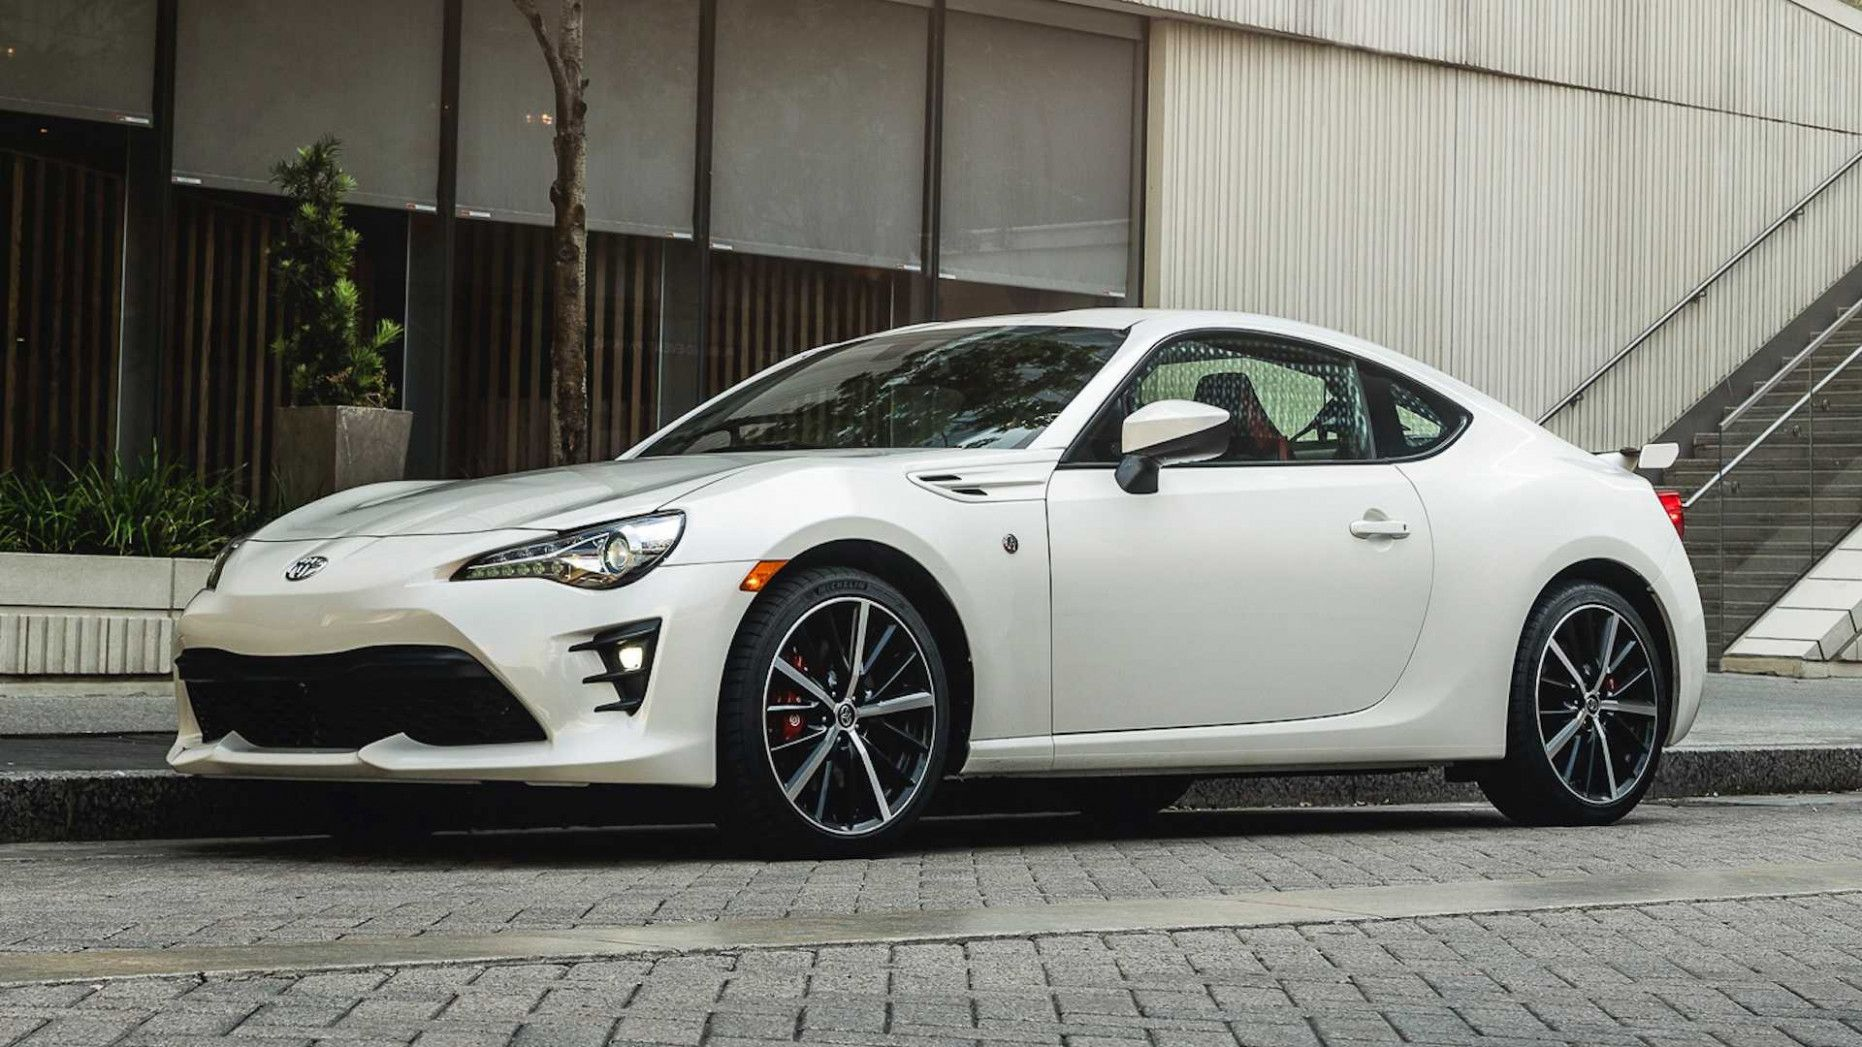 6 Wallpaper Toyota Gt 86 2020 In 2020 Toyota Gt86 Toyota Toyota 86